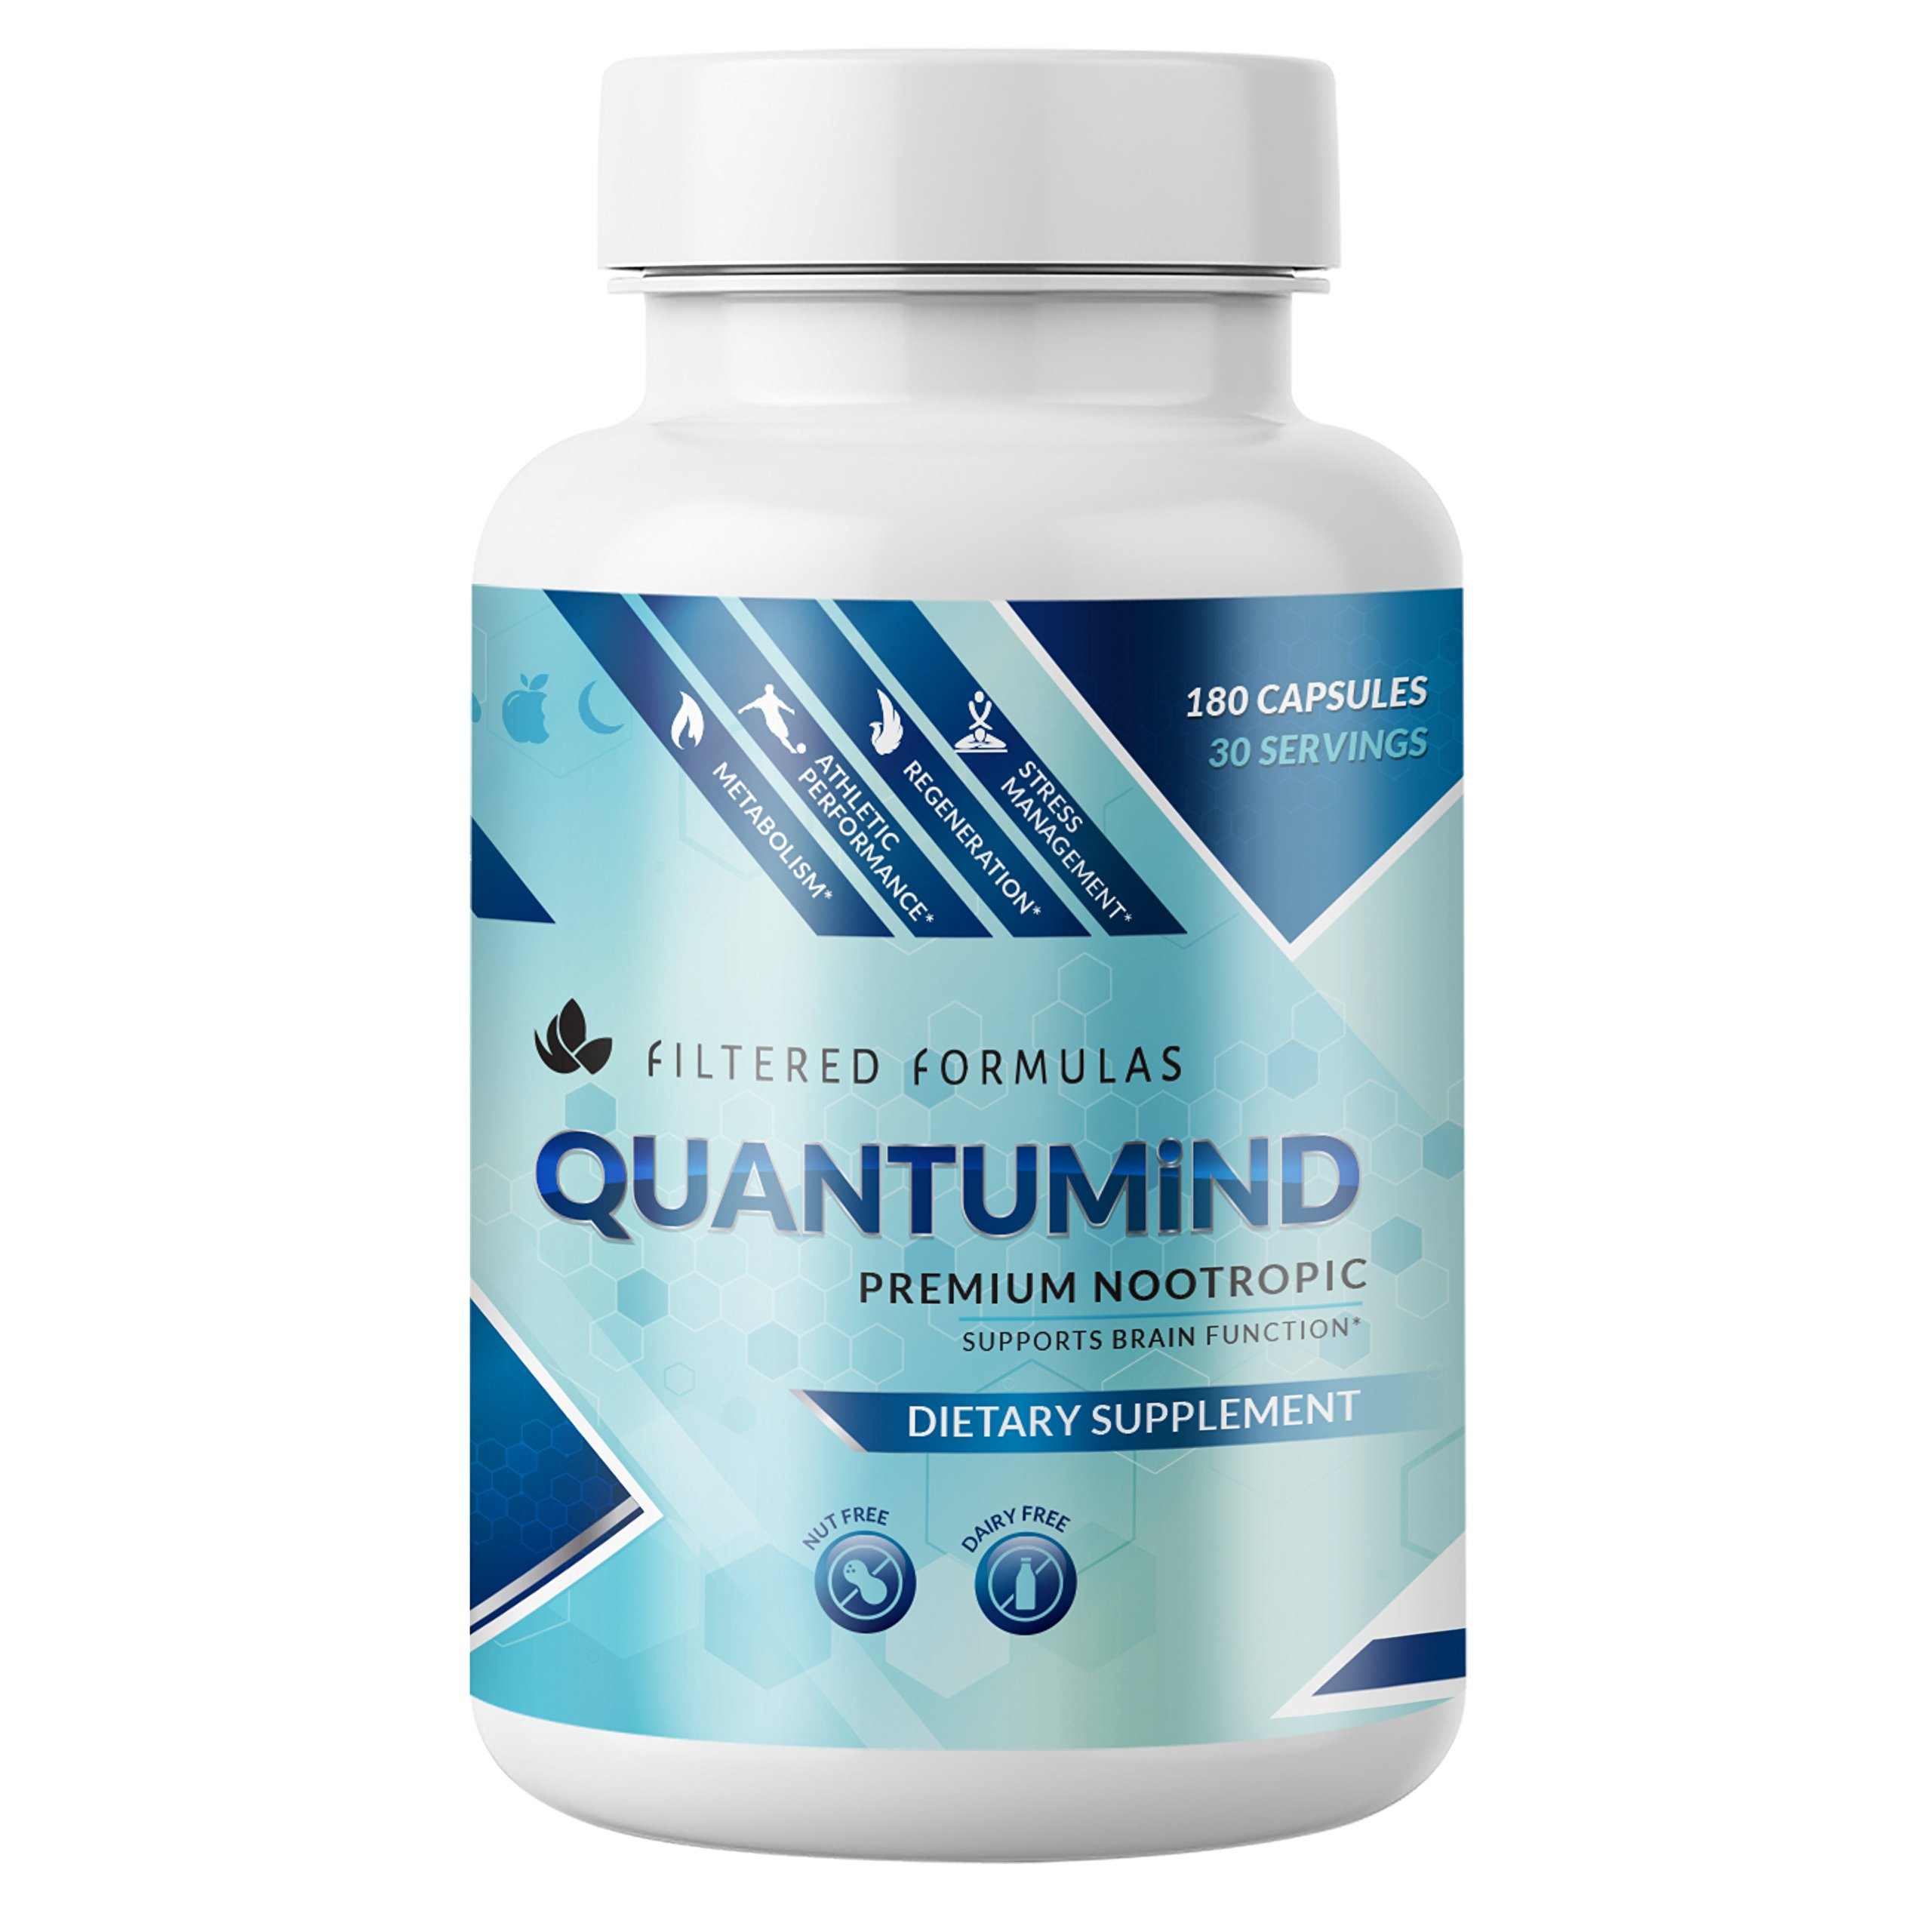 Nootropics Brain Supplement - Focus Supplement for Memory :: Concentration :: Clarity :: Energy - Mental Health and Memory Supplement for Brain with Ashwaganda - QUANTUMiND by Filtered Formulas (180)